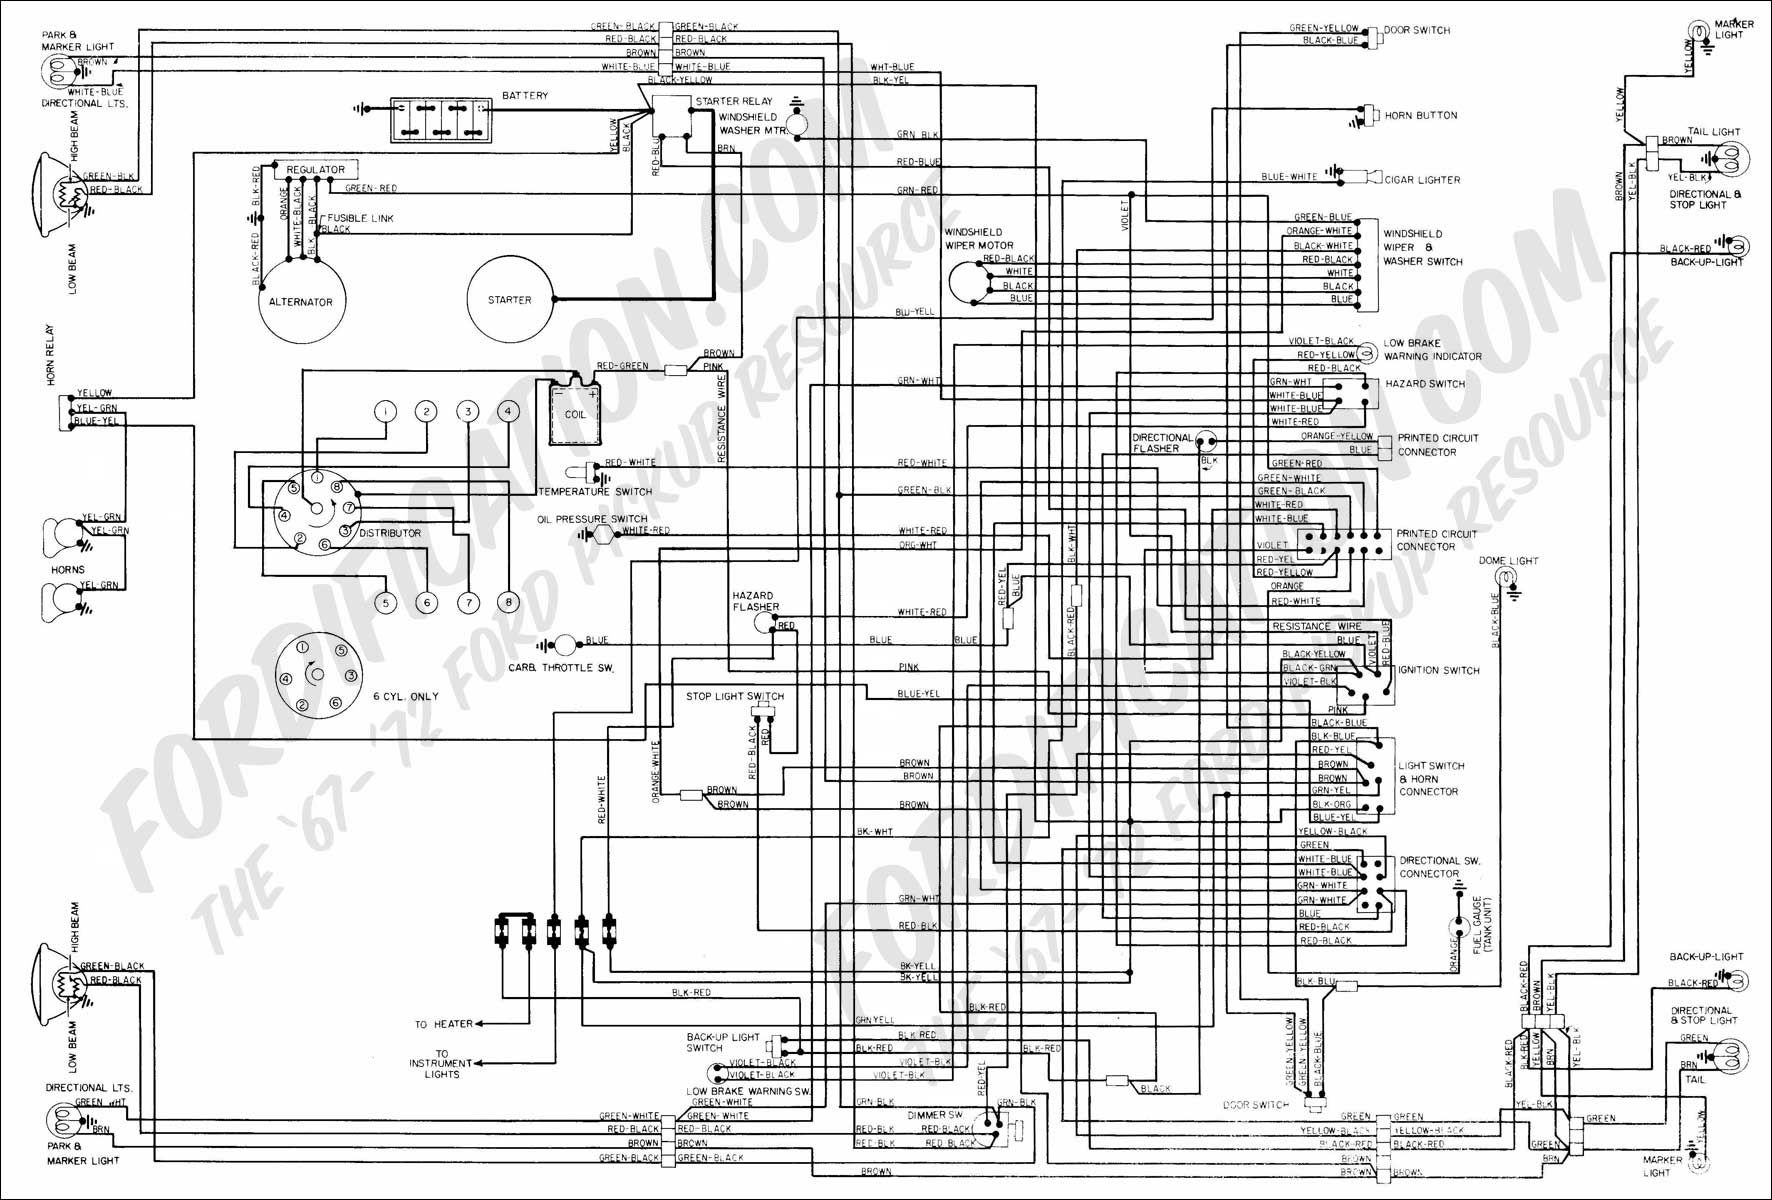 be873db495753211c2fc9a563f039b29 solenoid 1971 f250 1971 ford f100 wiring diagram www ford 1971 ford f250 wiring diagram at bakdesigns.co